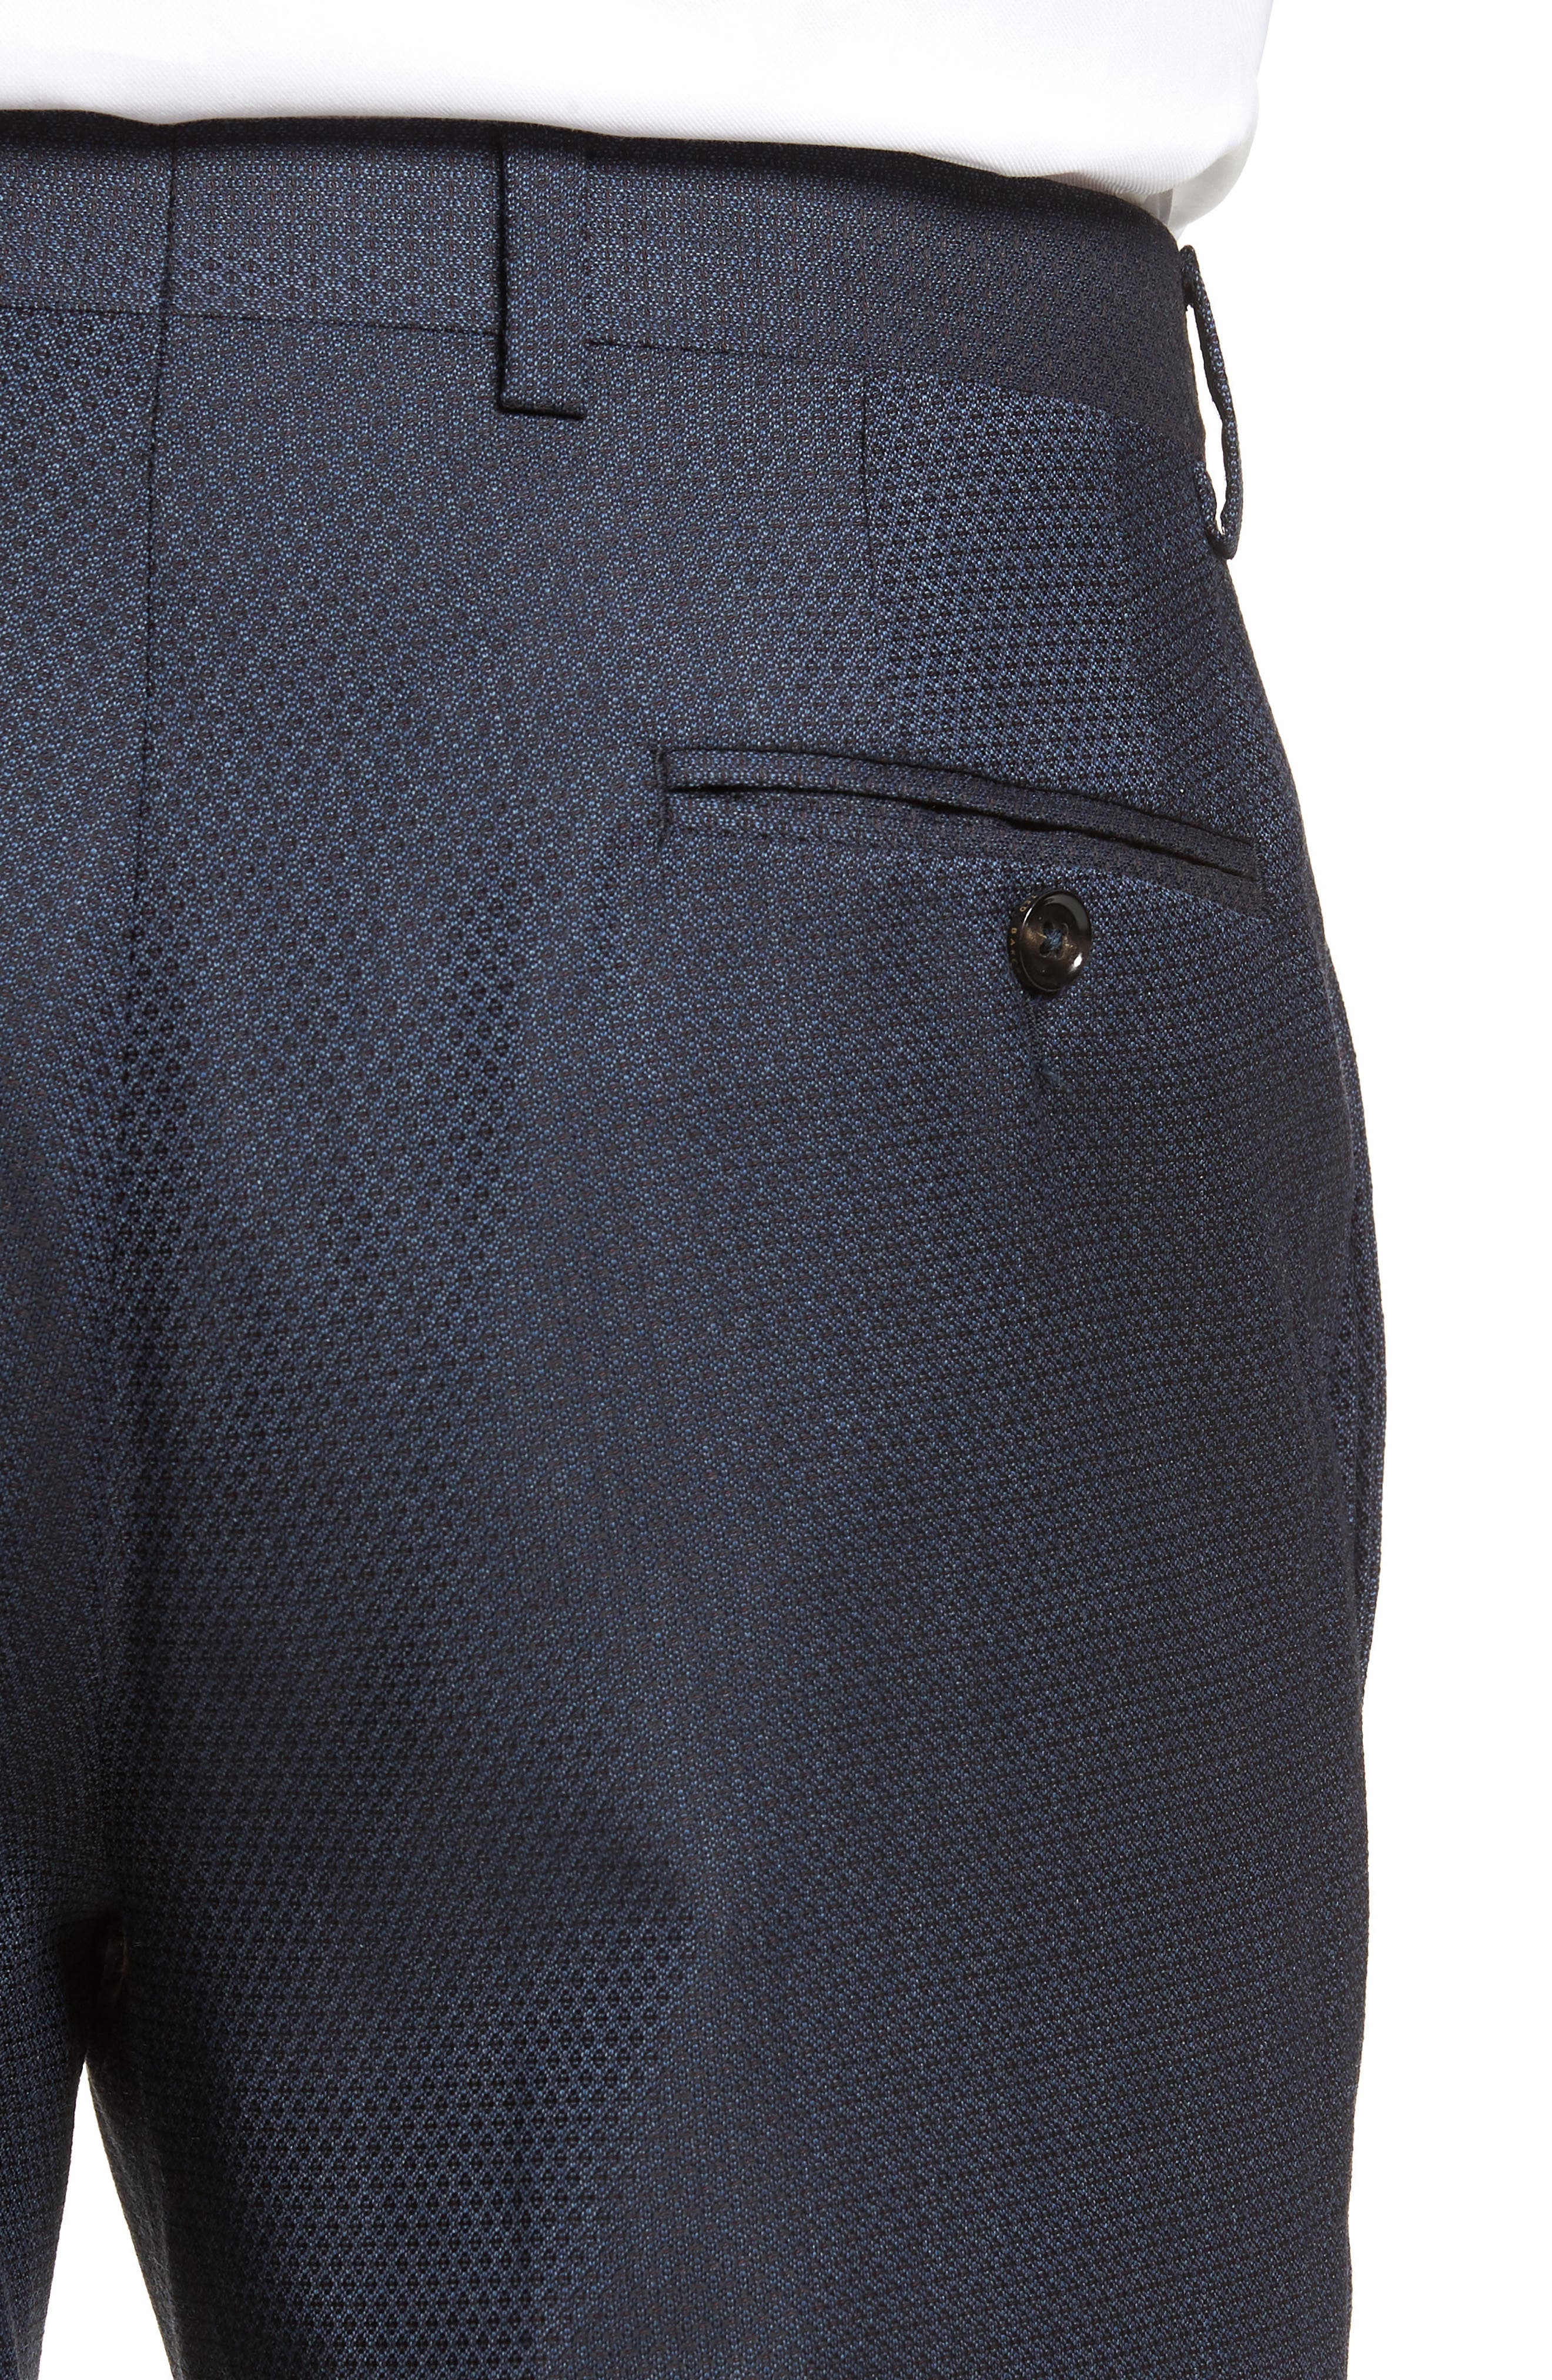 Jefferson Flat Front Solid Wool Trousers,                             Alternate thumbnail 4, color,                             400